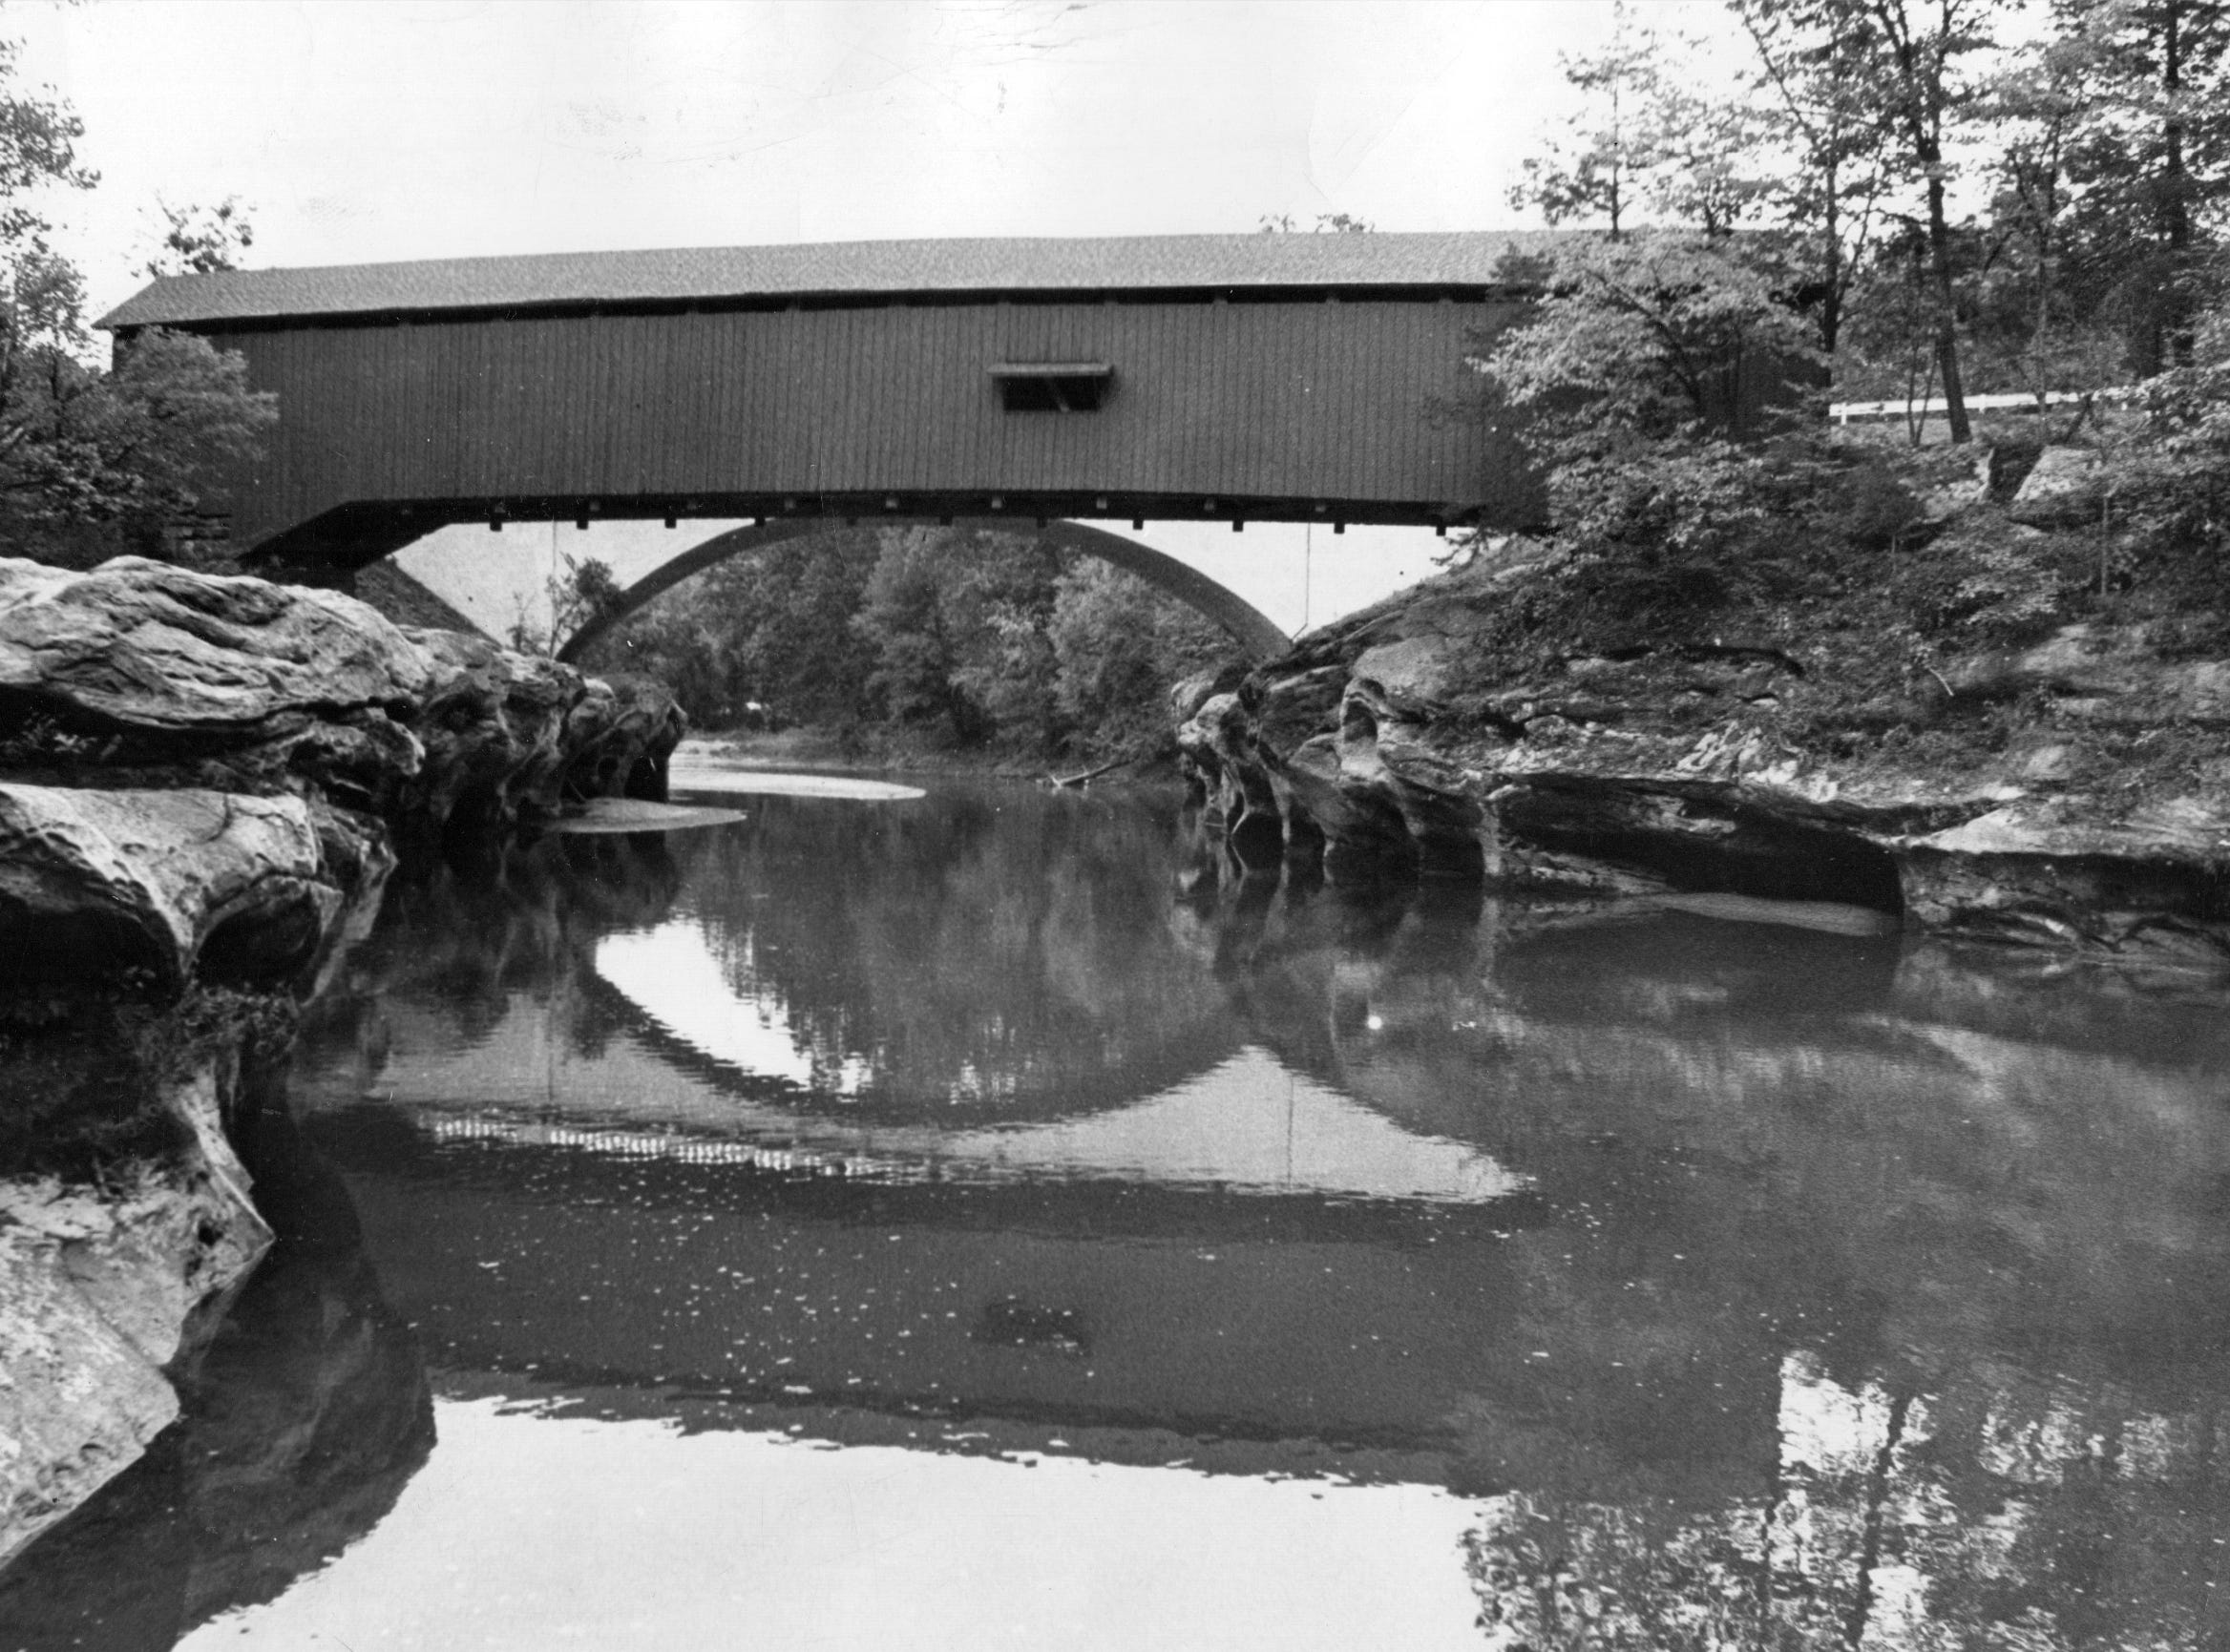 The Narrows Bridge over Sugar Creek on the boundary of Turkey Run State Park in Park County in 1970. The Narrows bridge is one of the most photographed covered bridges in the state.